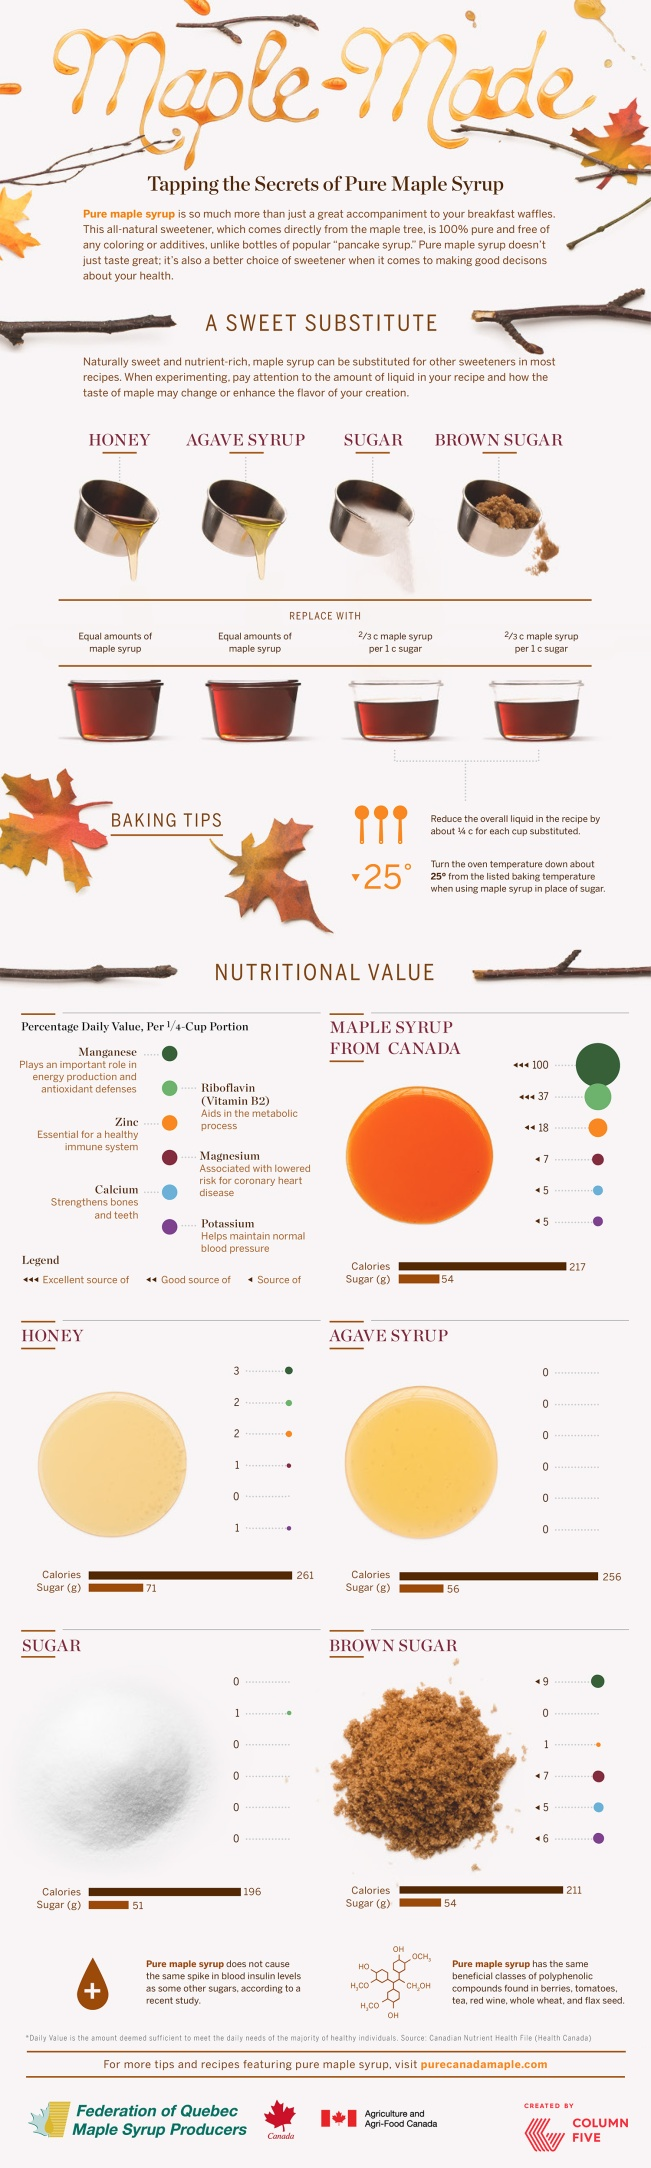 maple-sugar-alternative-infogrpahic-lg (1)